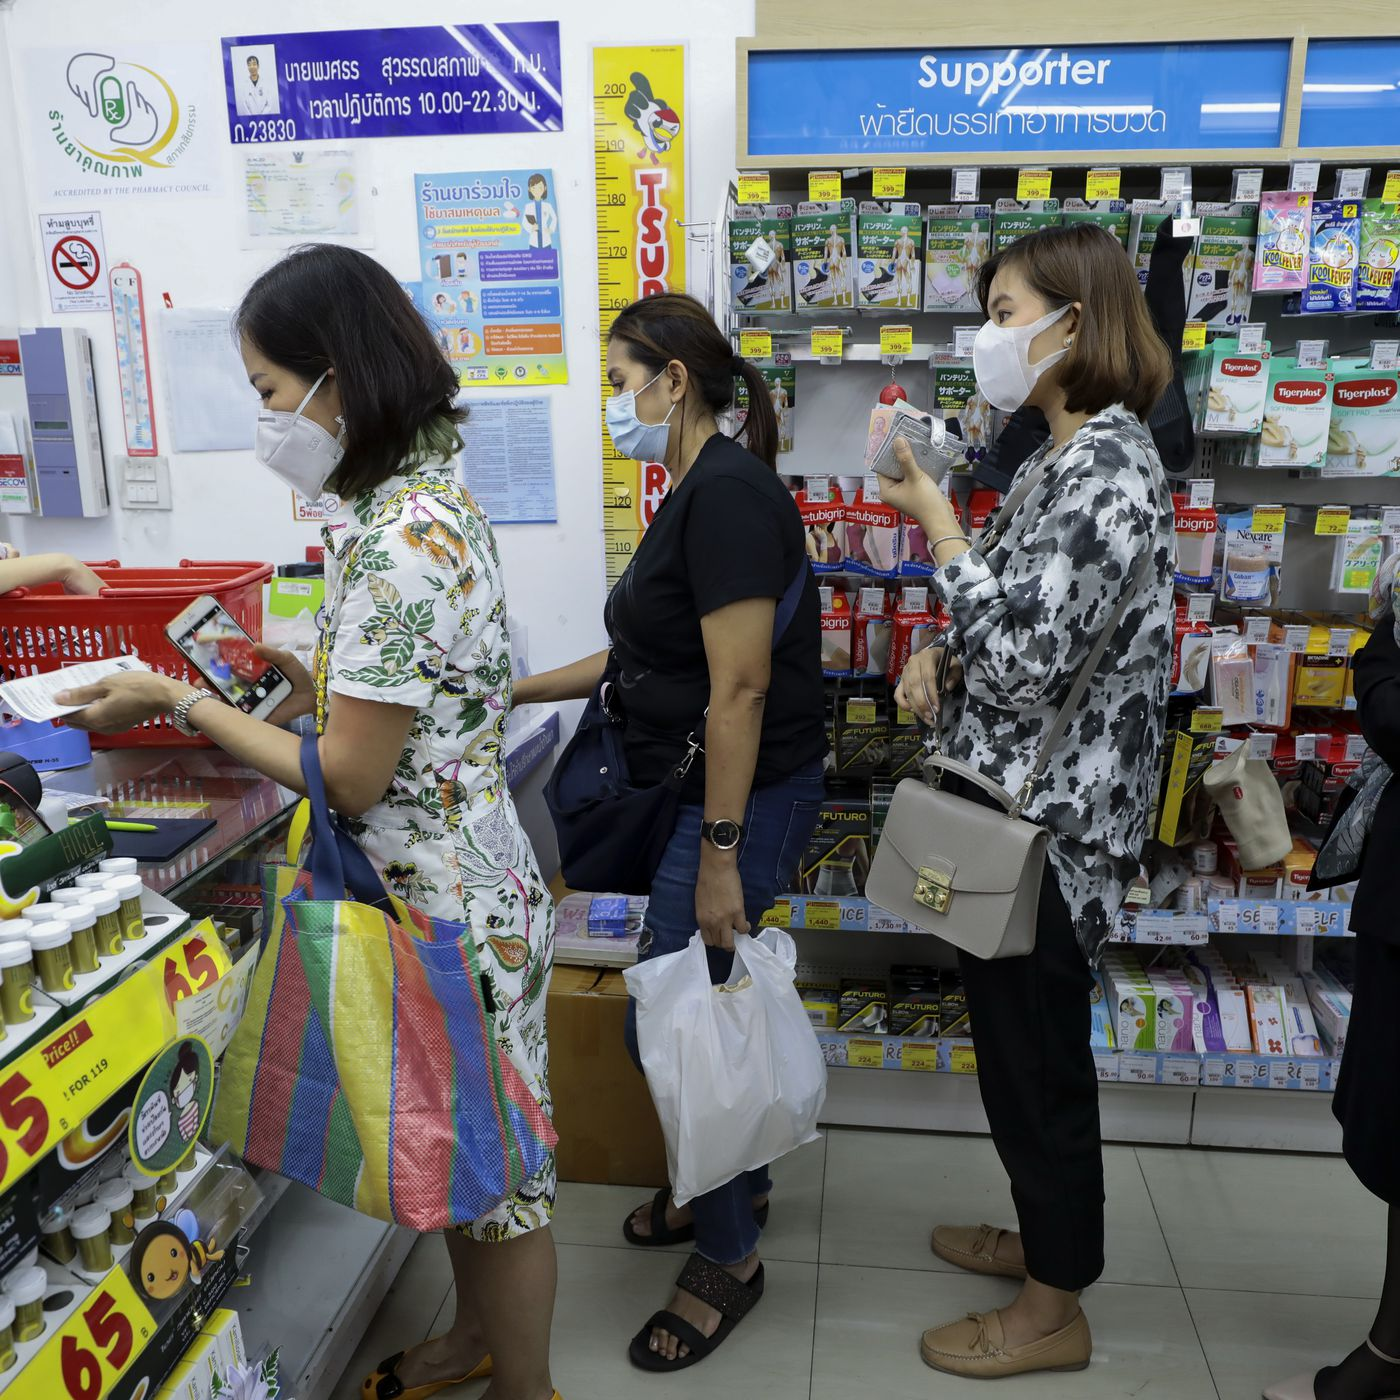 vox.com - Terry Nguyen - Coronavirus has Americans rushing to buy face masks, but health officials warn to not hoard them